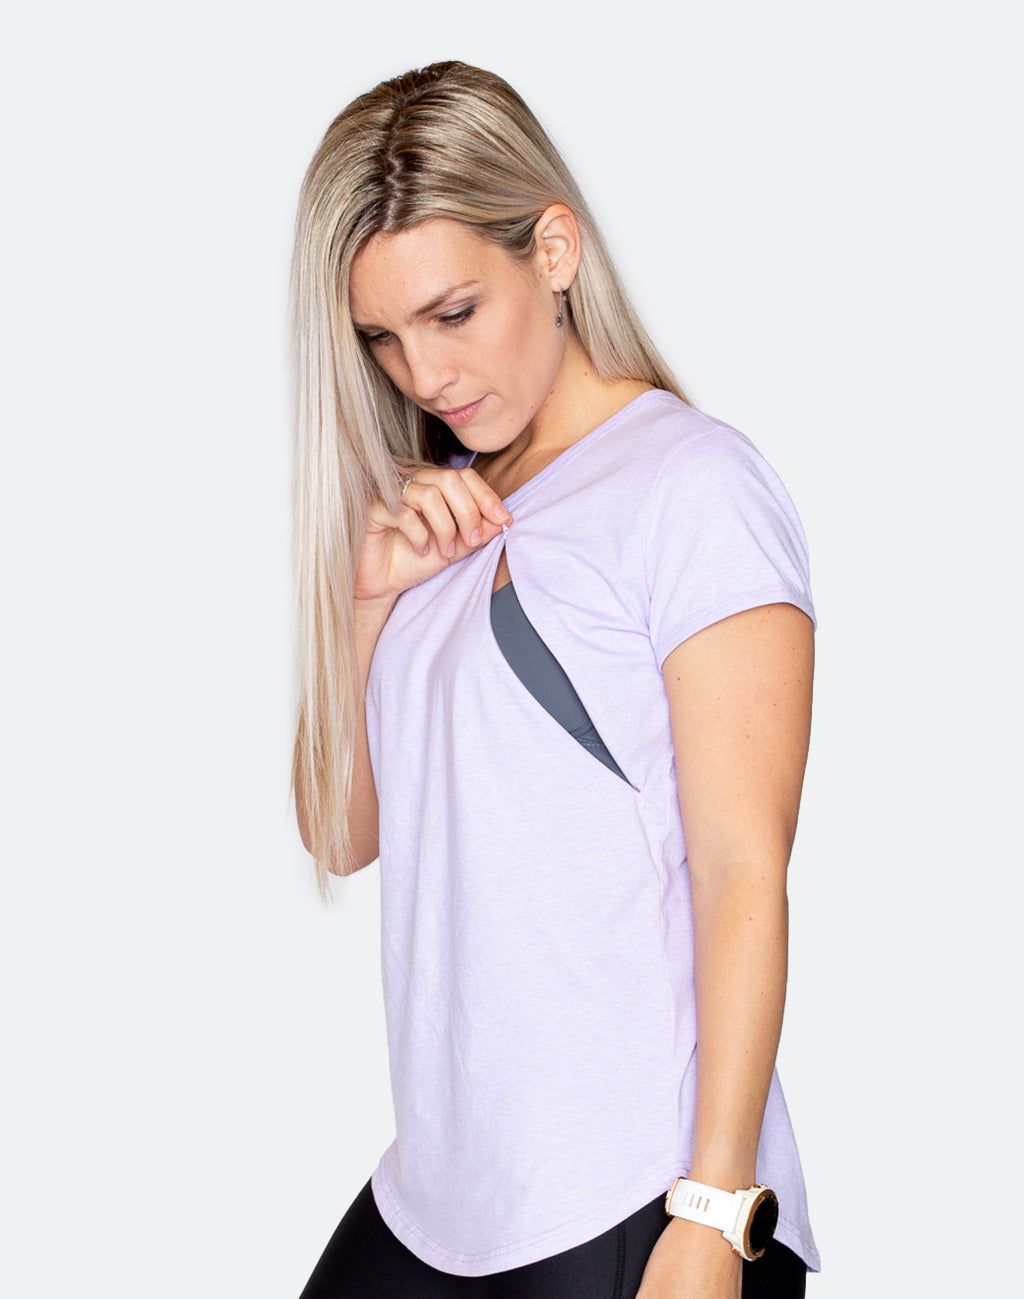 active mum wearing a lilac breastfeeding t-shirt for getting back into exercise